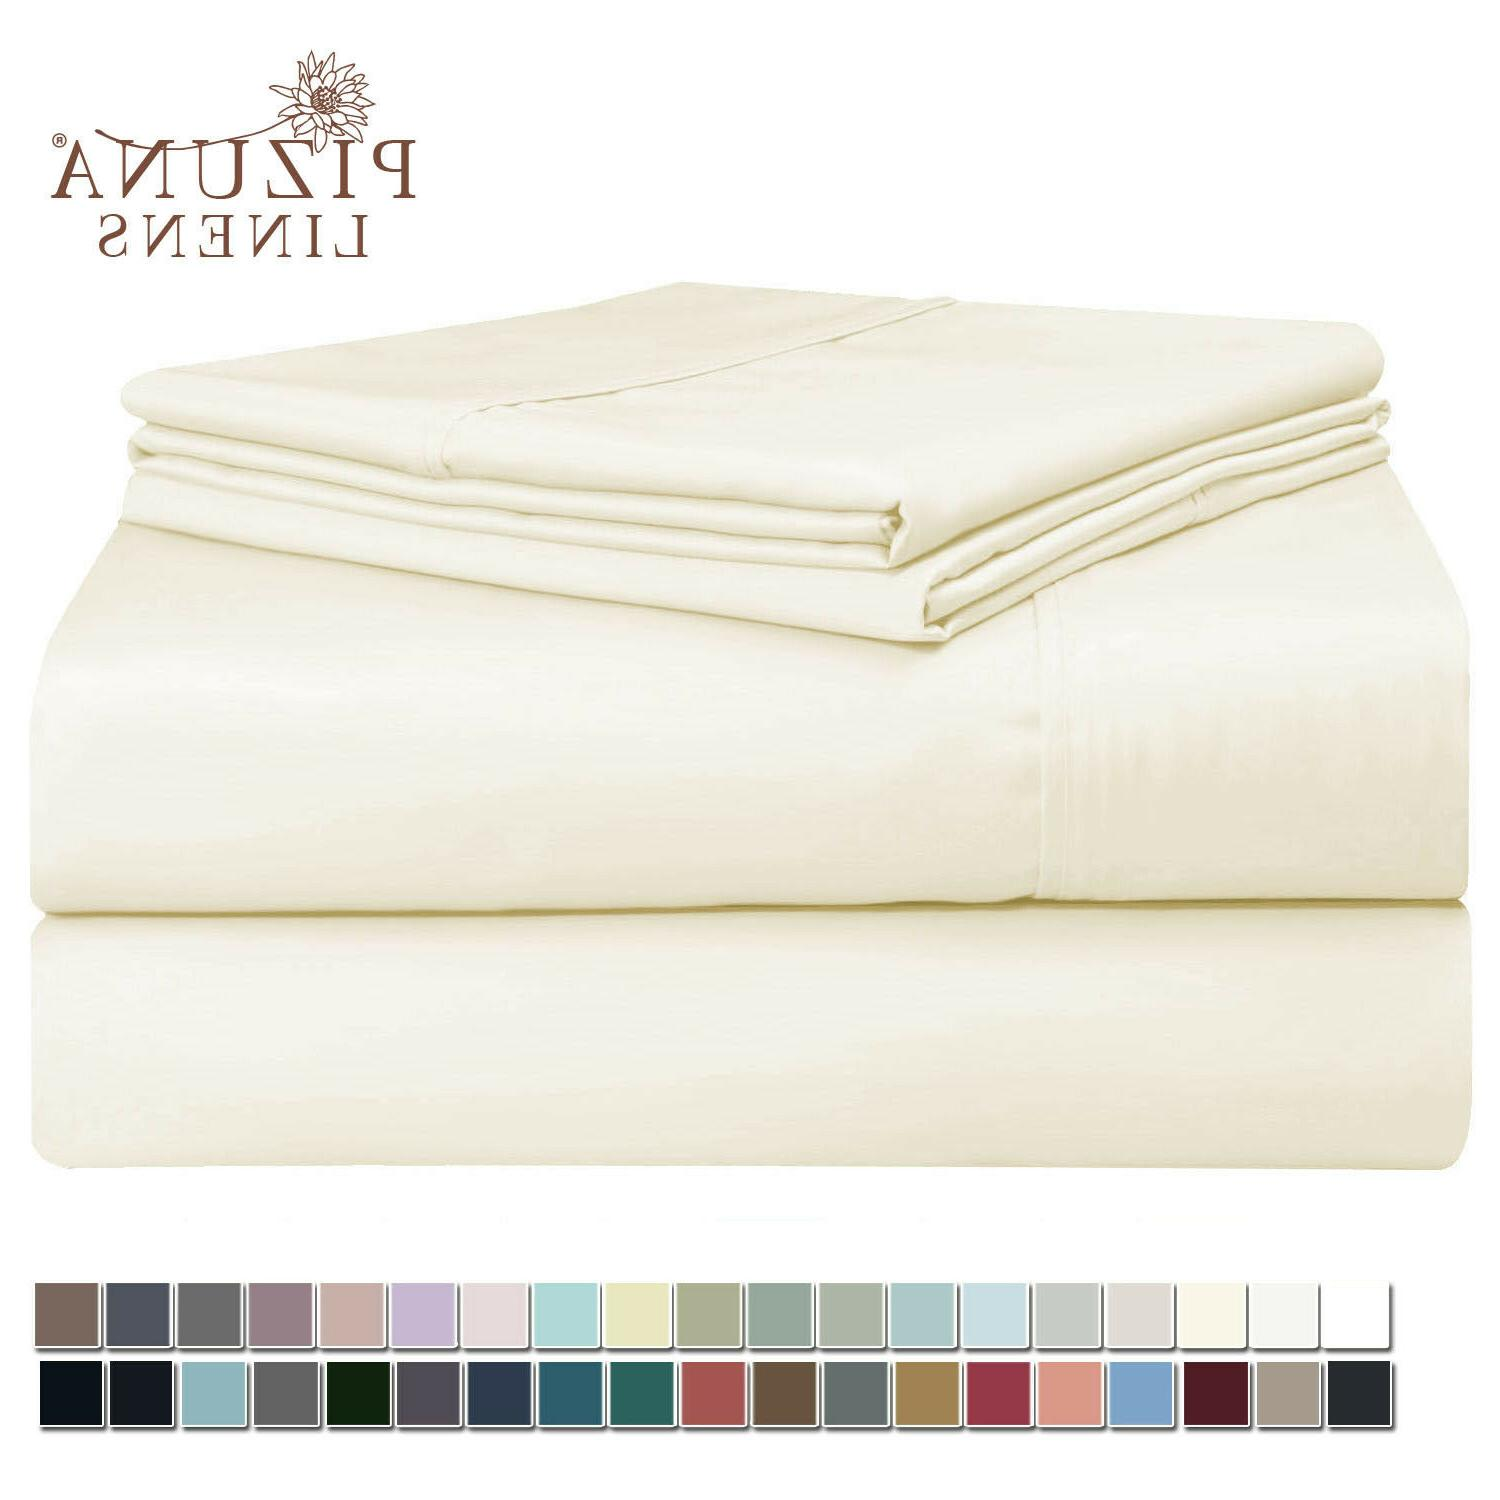 BAMBOO 6 PIECE SET Ashley Taylor bed sheets   WOW EXTRA PILL